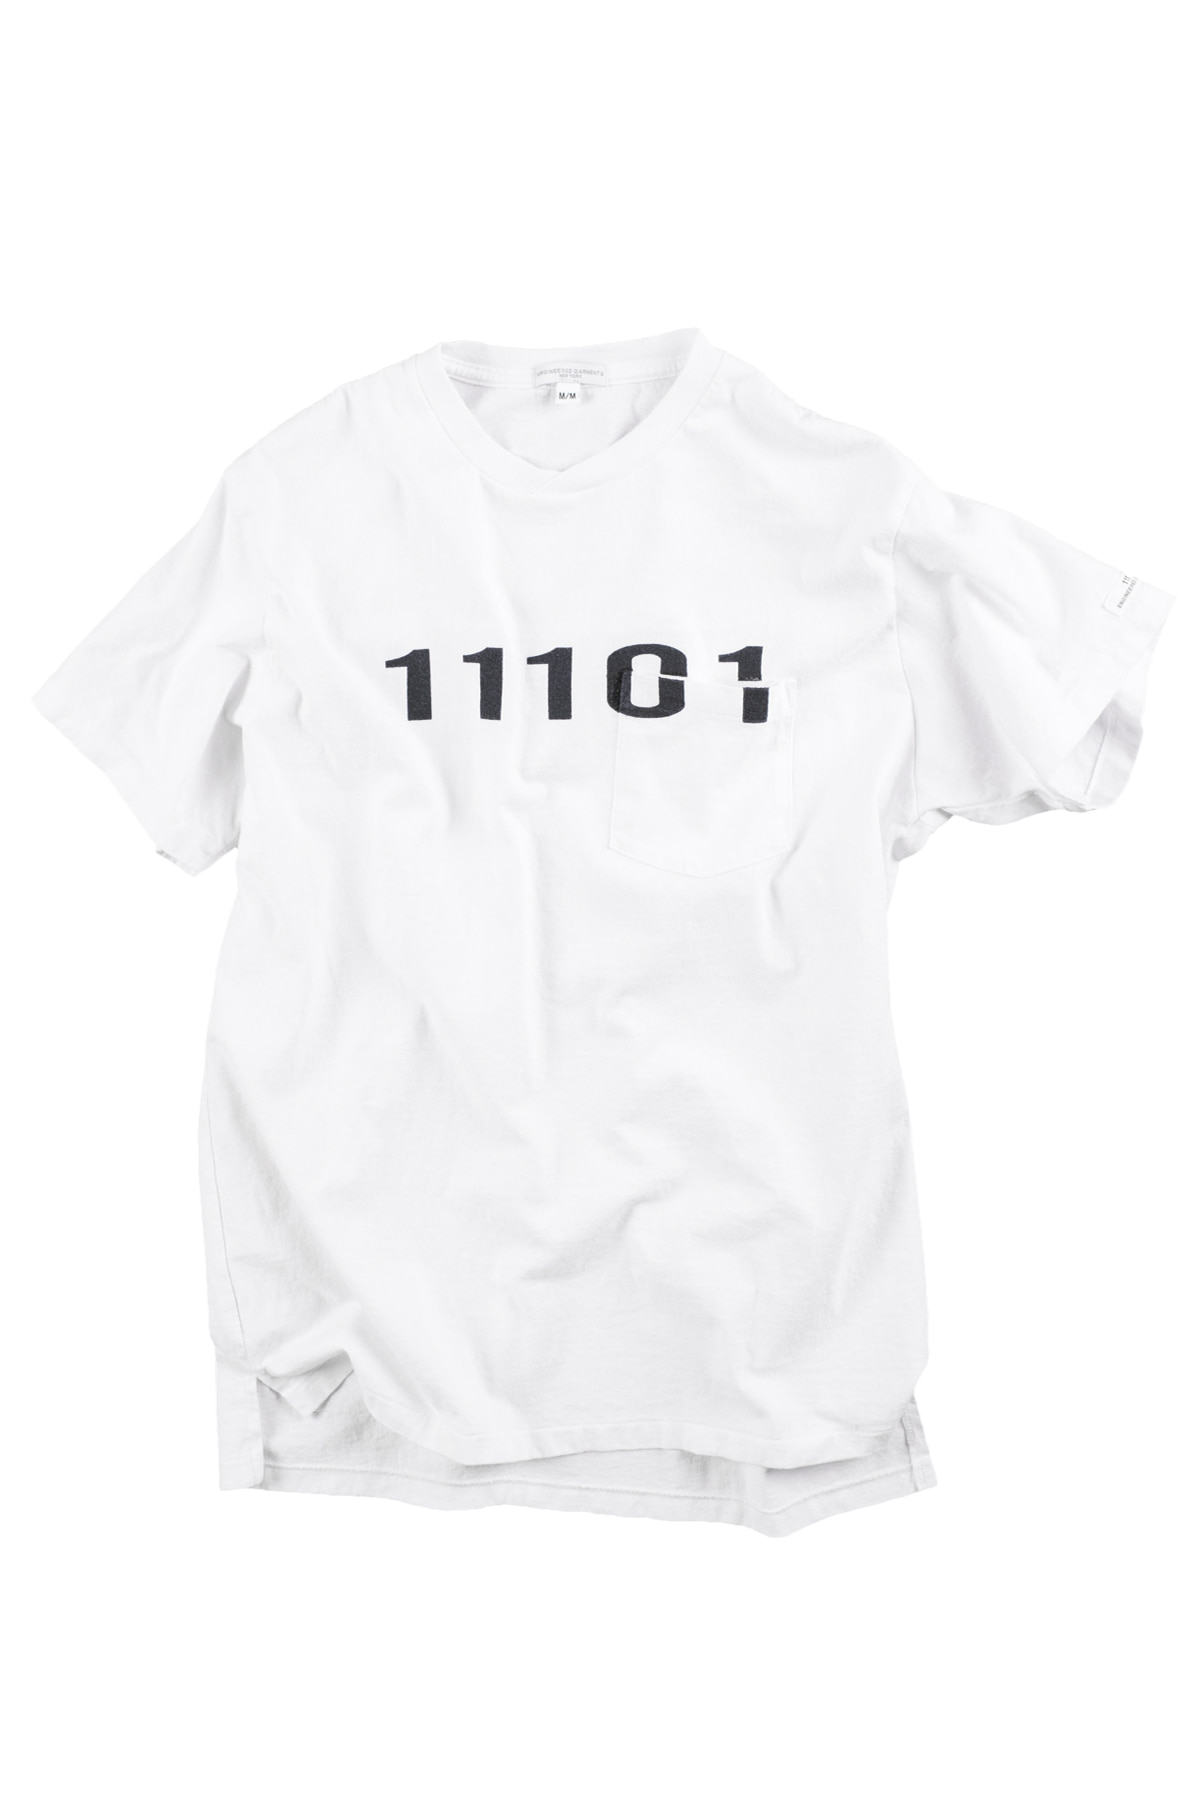 Engineered Garments : Printed T-Shirt (11101)